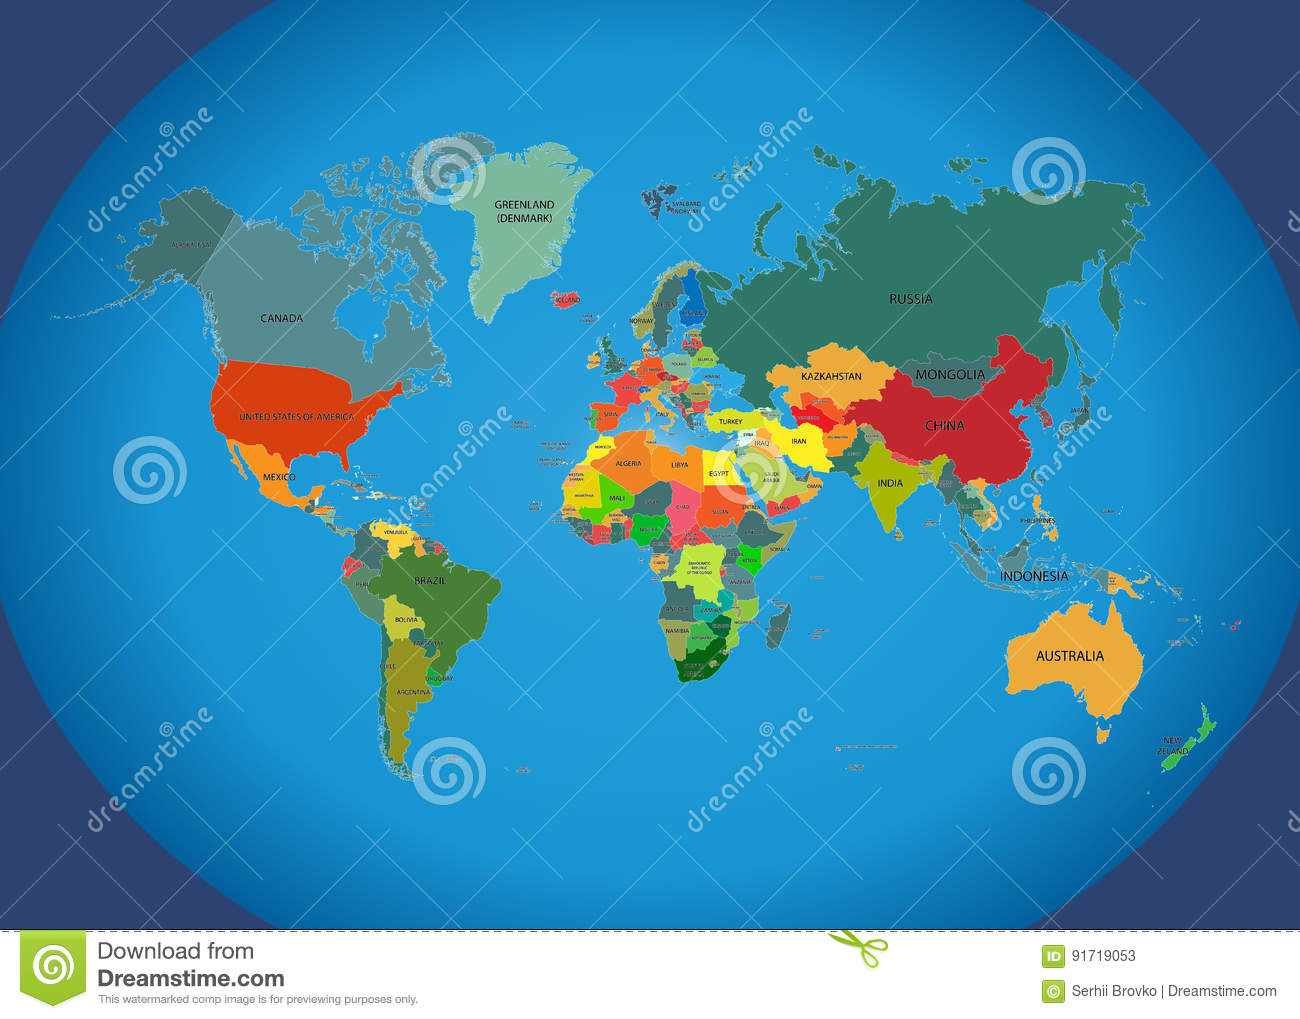 World map with country names stock vector illustration of download world map with country names stock vector illustration of illustration borders gumiabroncs Image collections